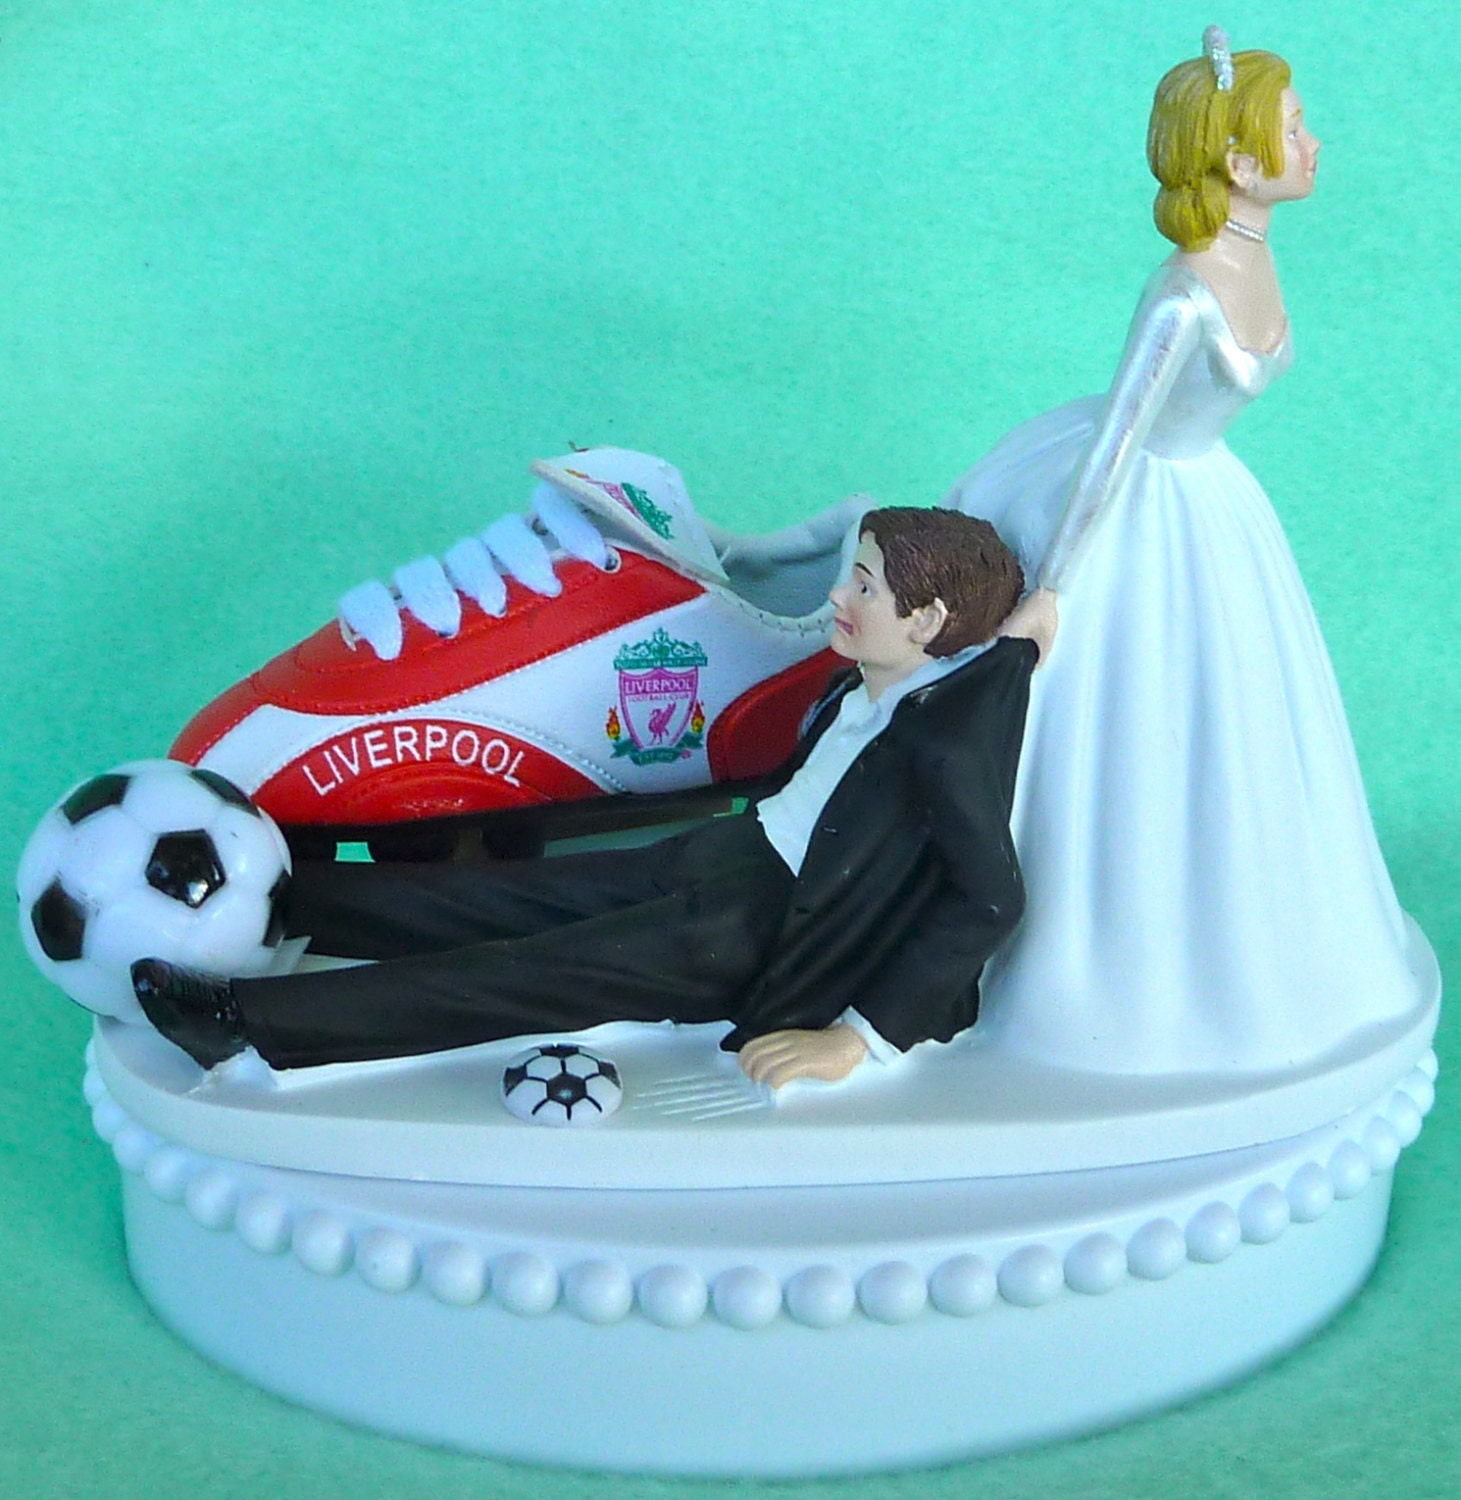 funny wedding cake toppers soccer wedding cake topper liverpool f c football club soccer themed 14606